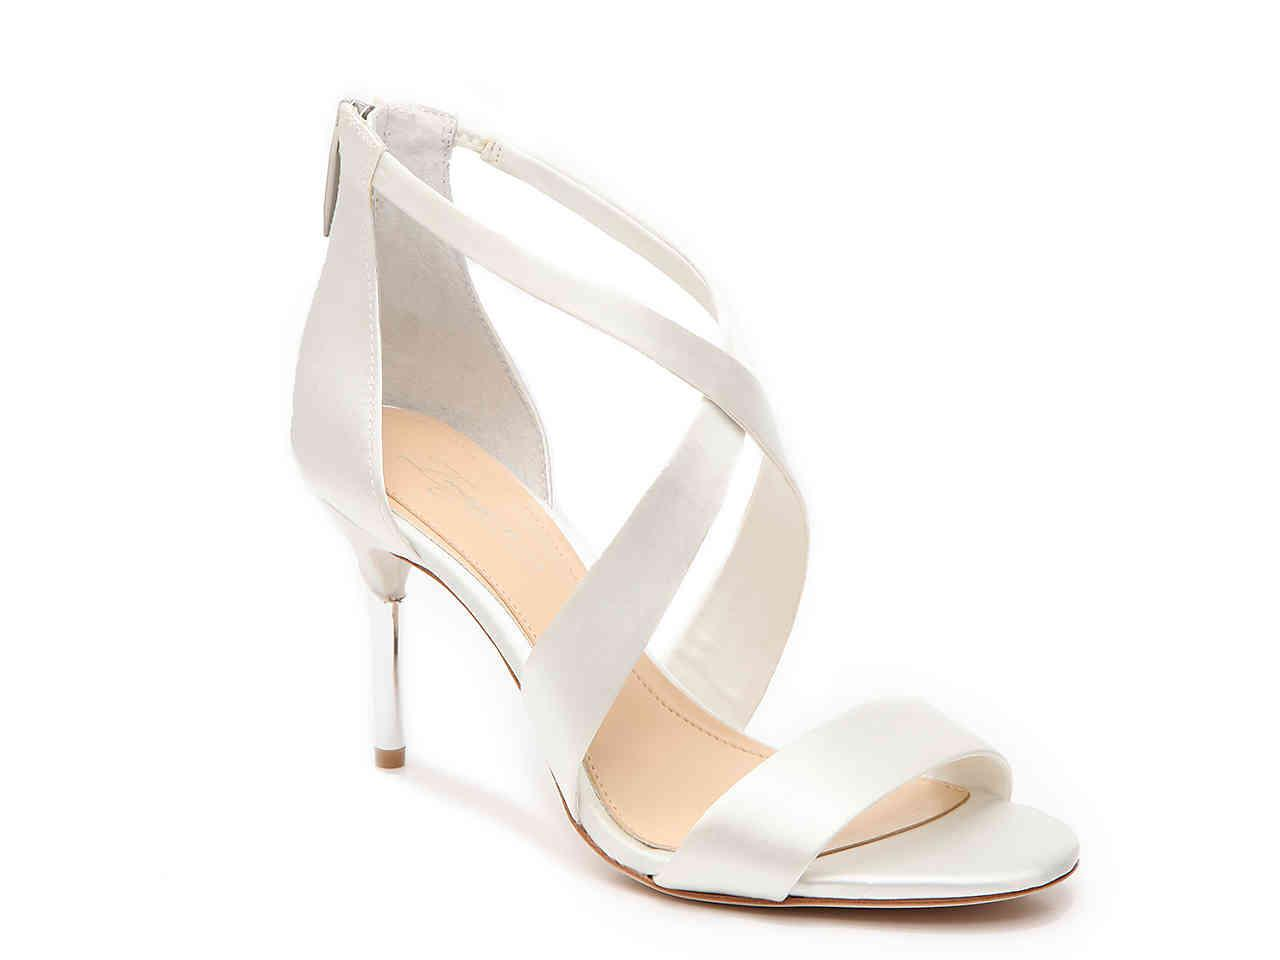 465a15e1ed99 Lyst - Imagine Vince Camuto Pascal Sandal in White